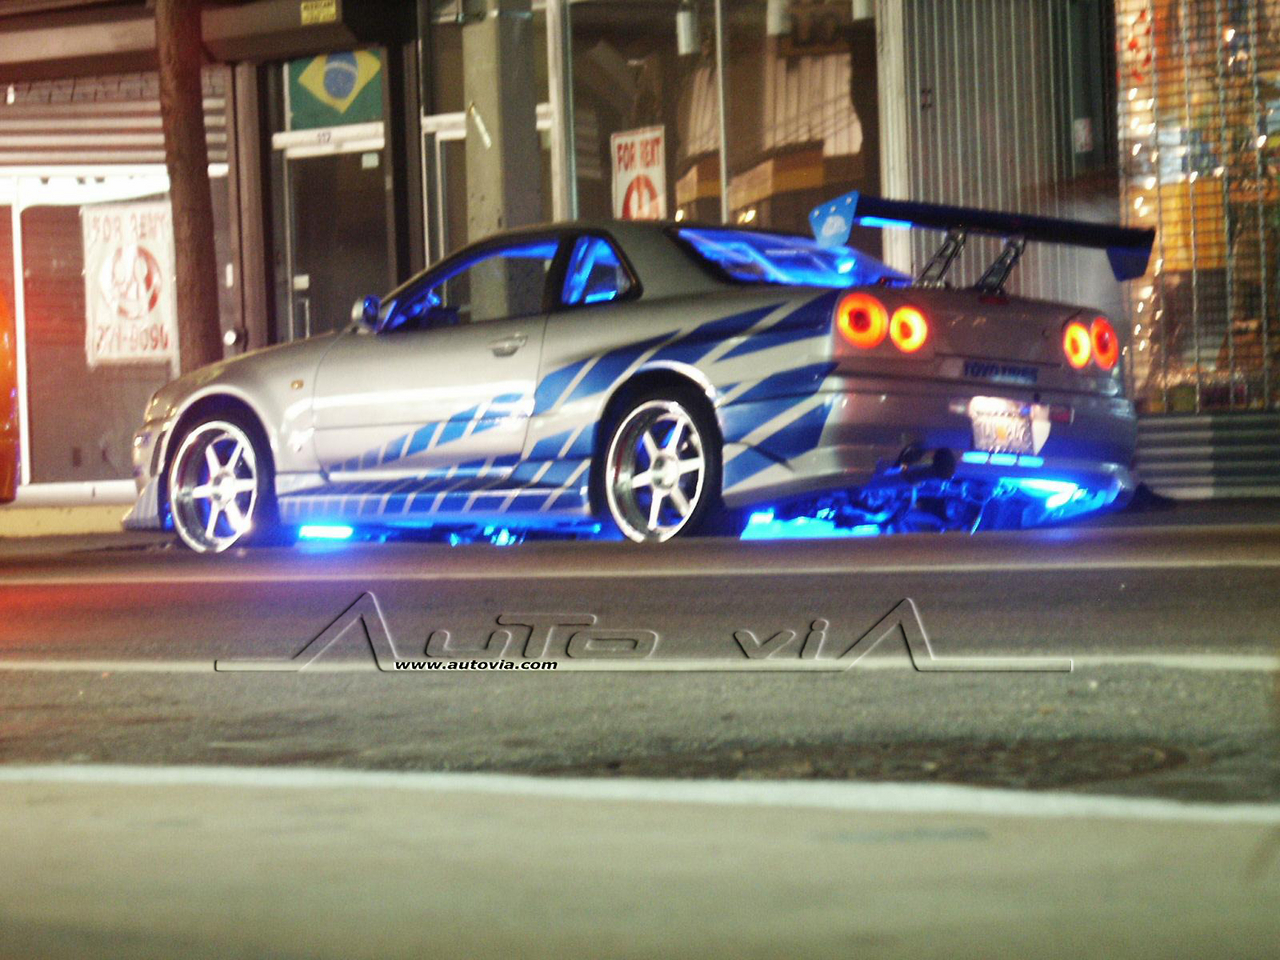 The Skyline Nissan